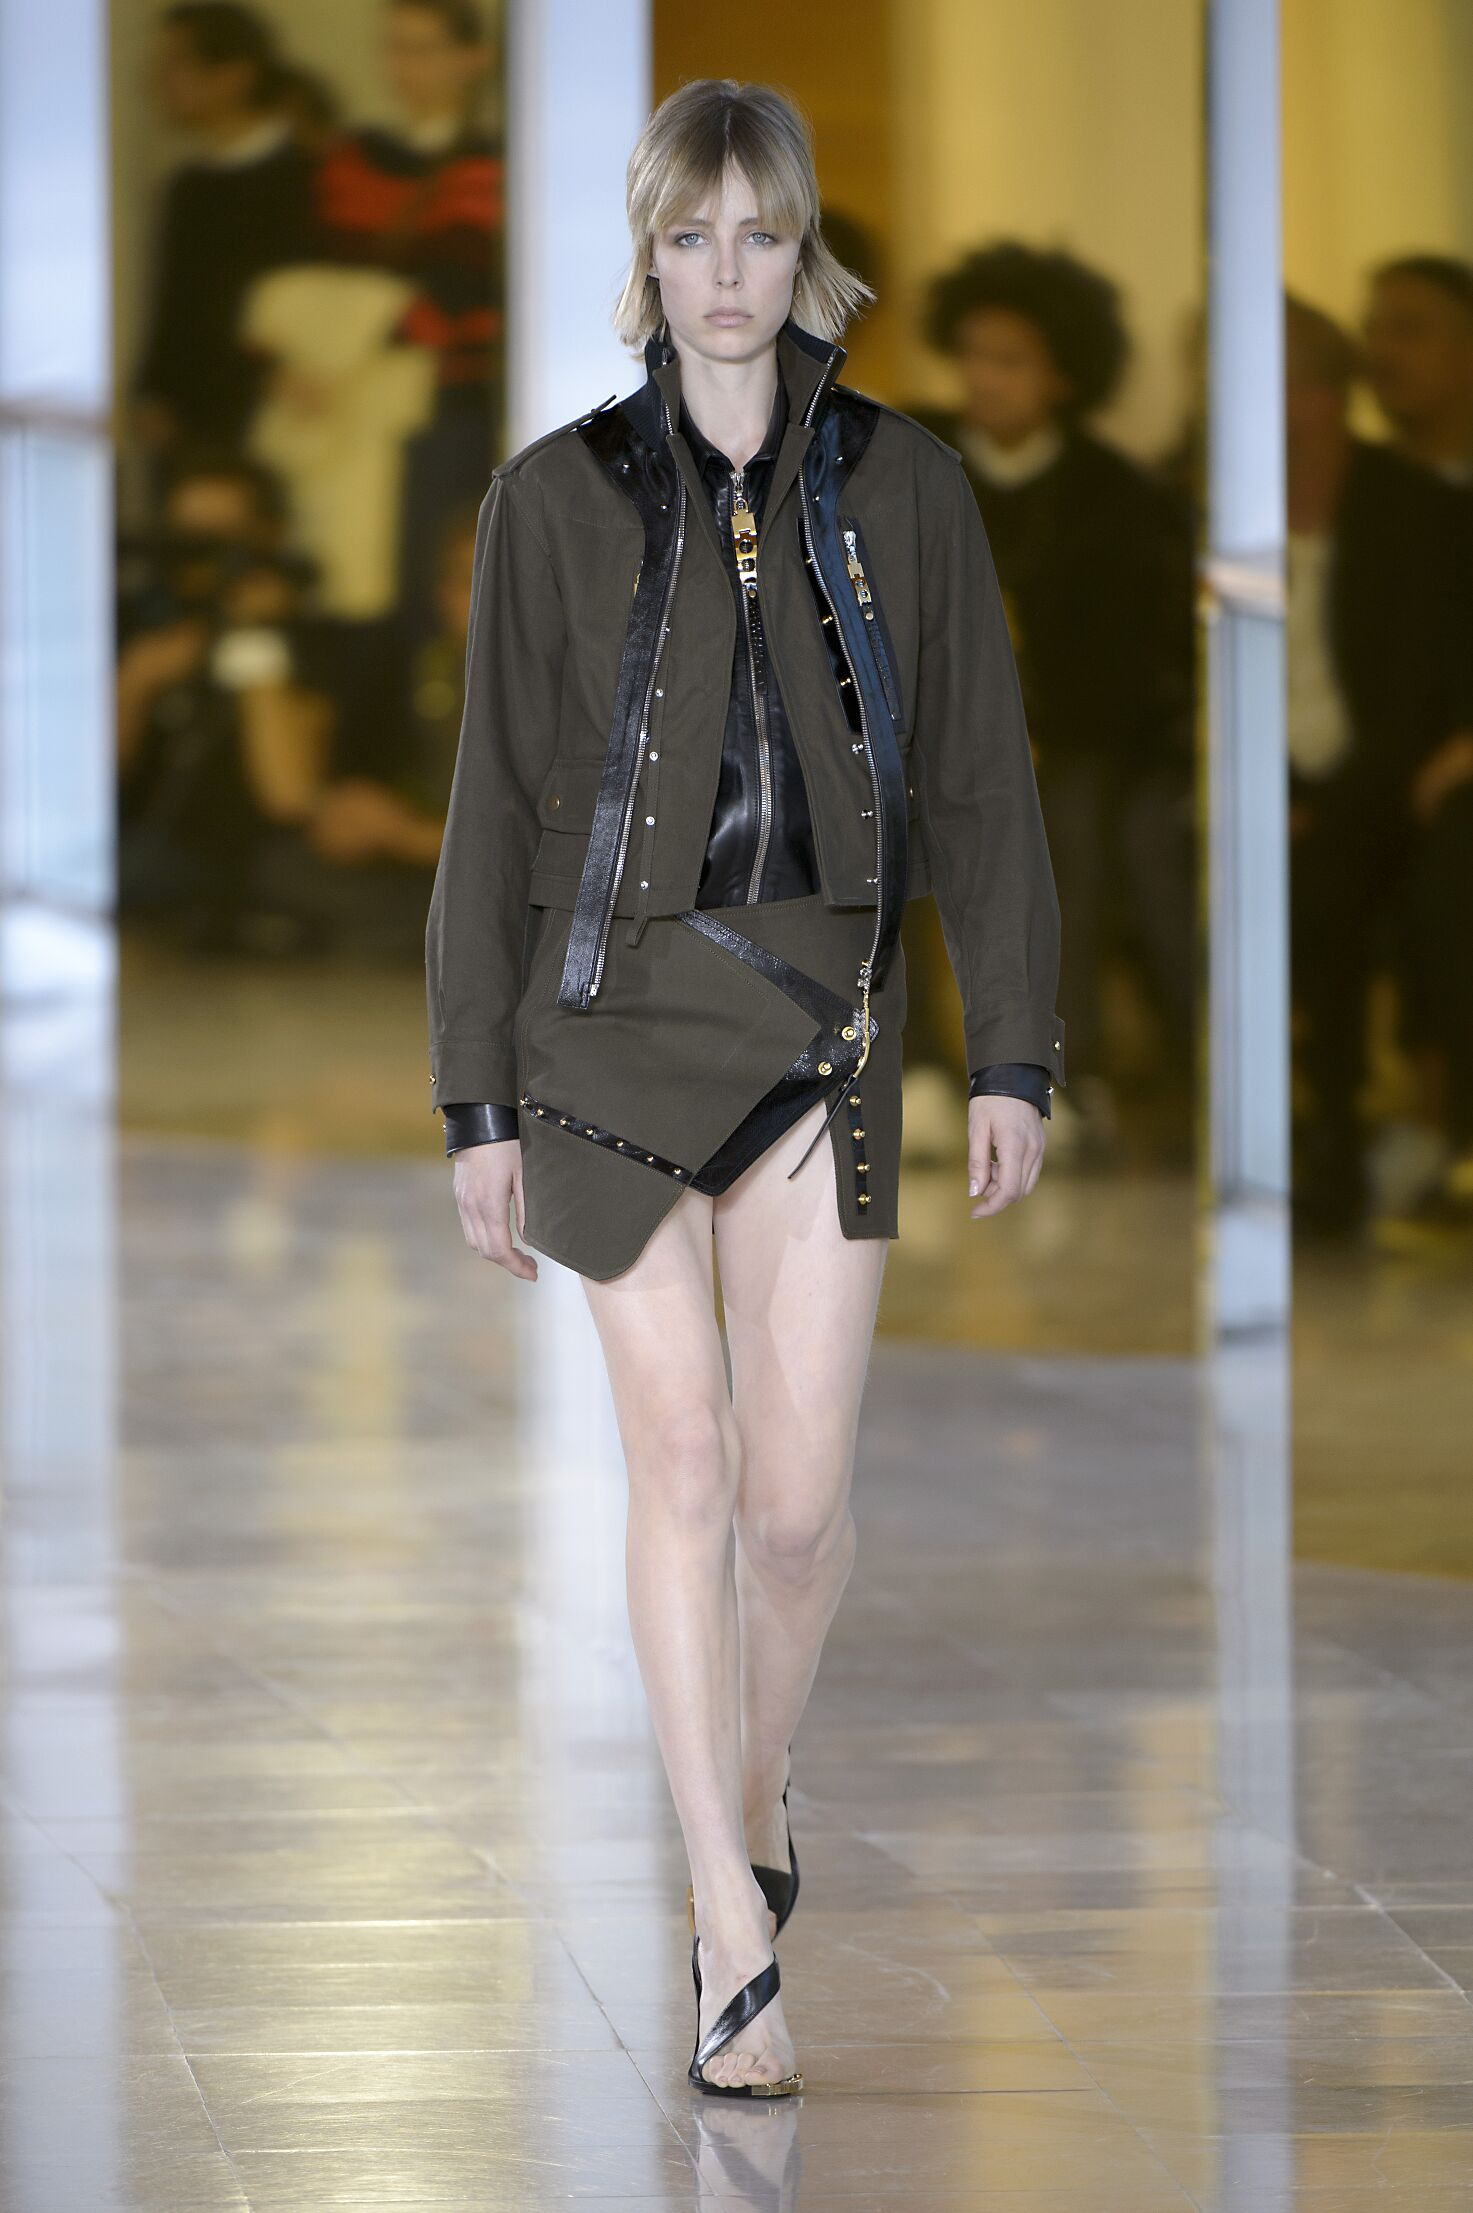 fb75aba89c7 ANTHONY VACCARELLO SPRING SUMMER 2016 WOMEN S COLLECTION